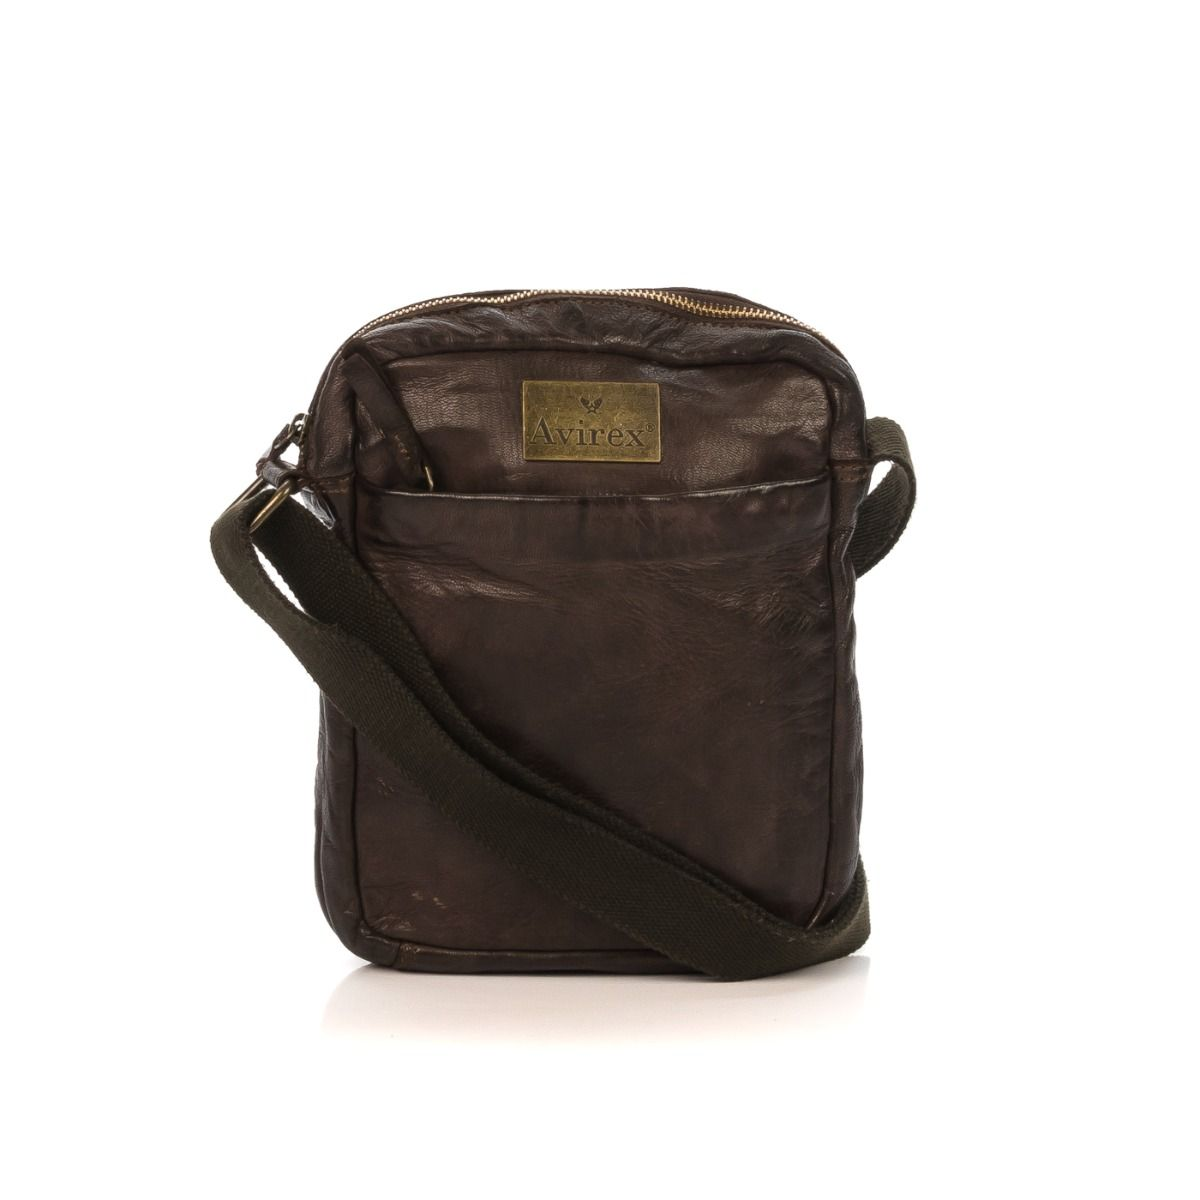 Borsa tracolla uomo in pelle Avirex Mayday MDY02 Brown